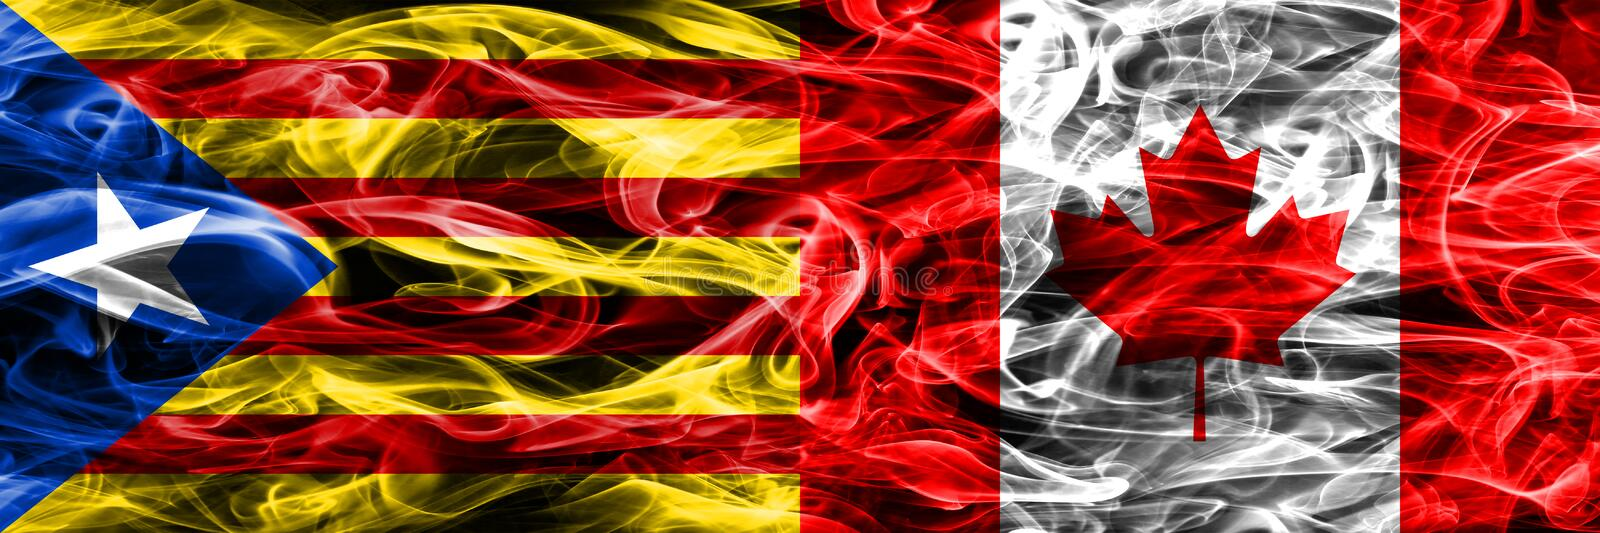 Catalonia vs Canada copy smoke flags placed side by side. Thick colored silky smoke flags of Catalan and Canada copy.  royalty free illustration